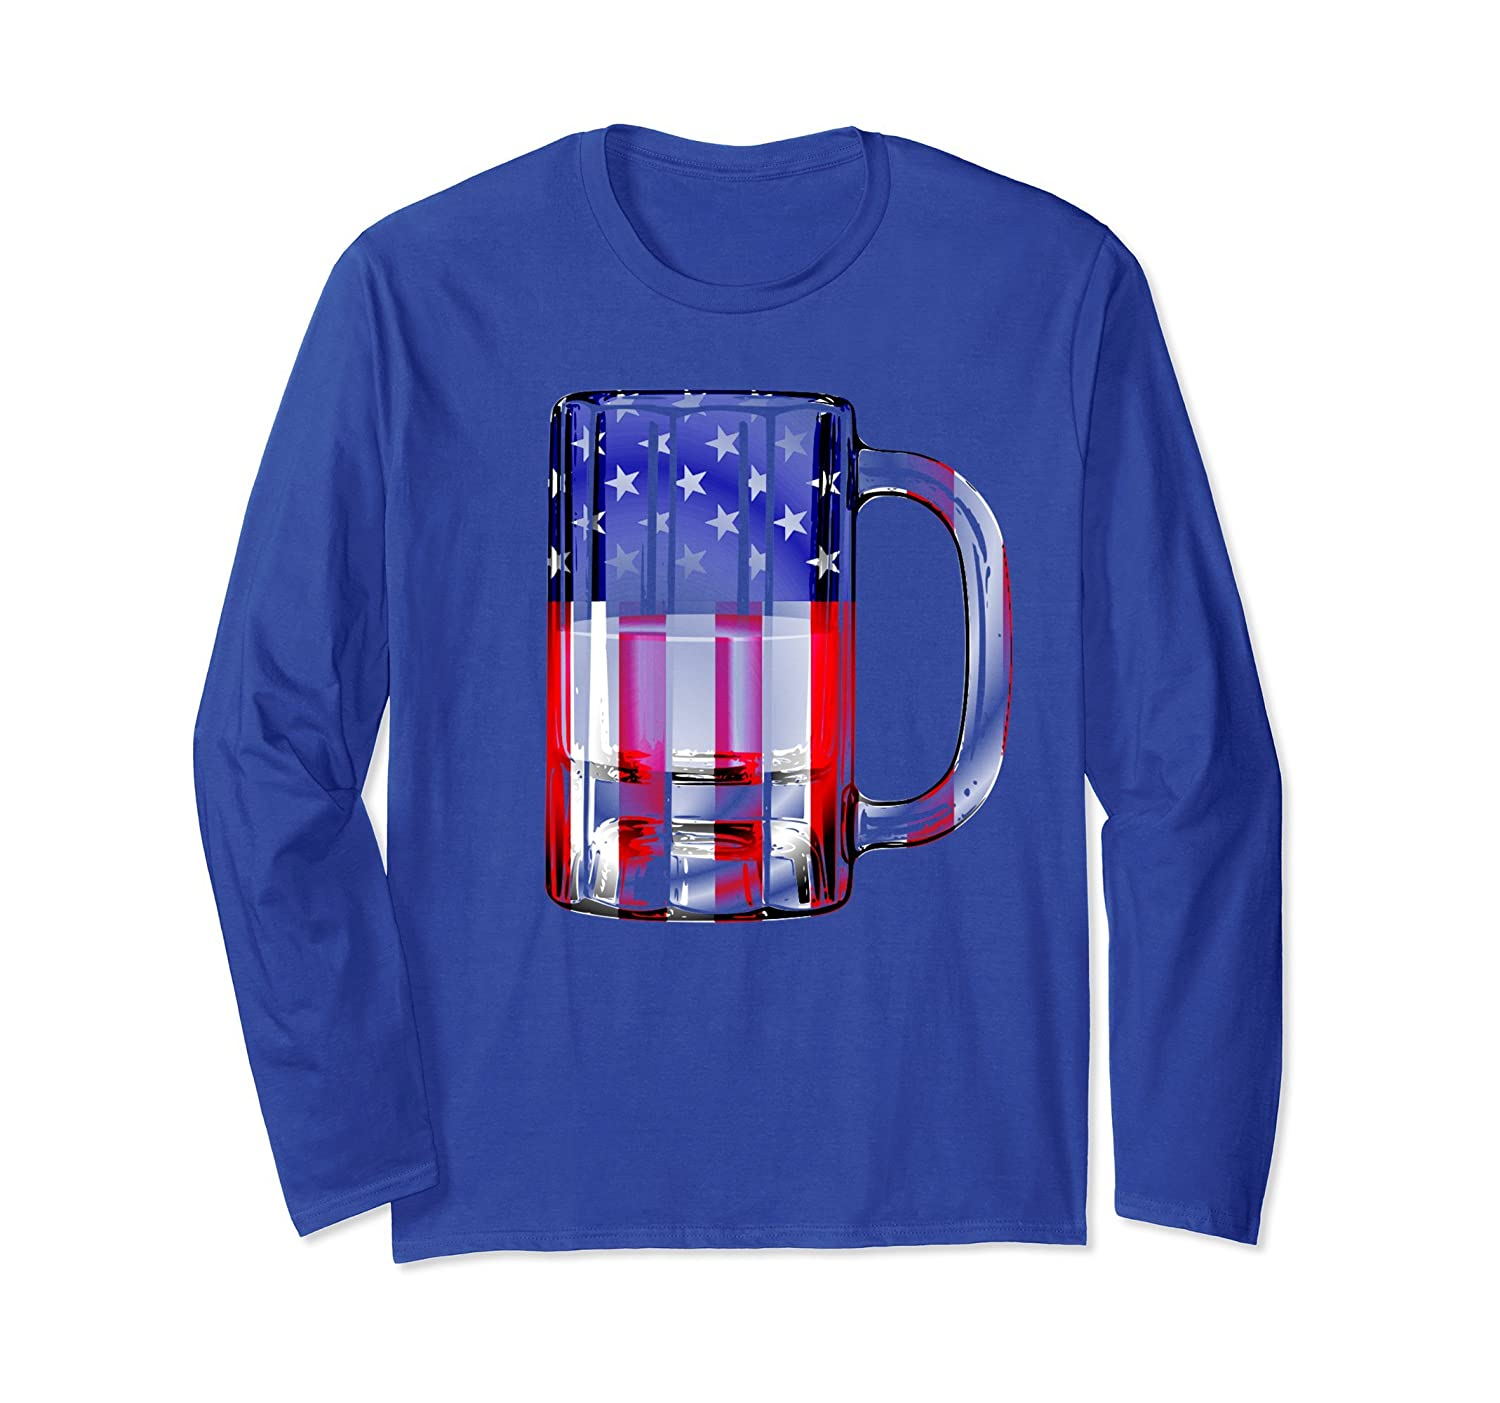 4th of July Shirt For Men Dad Beer Mug American Flag USA-AZP